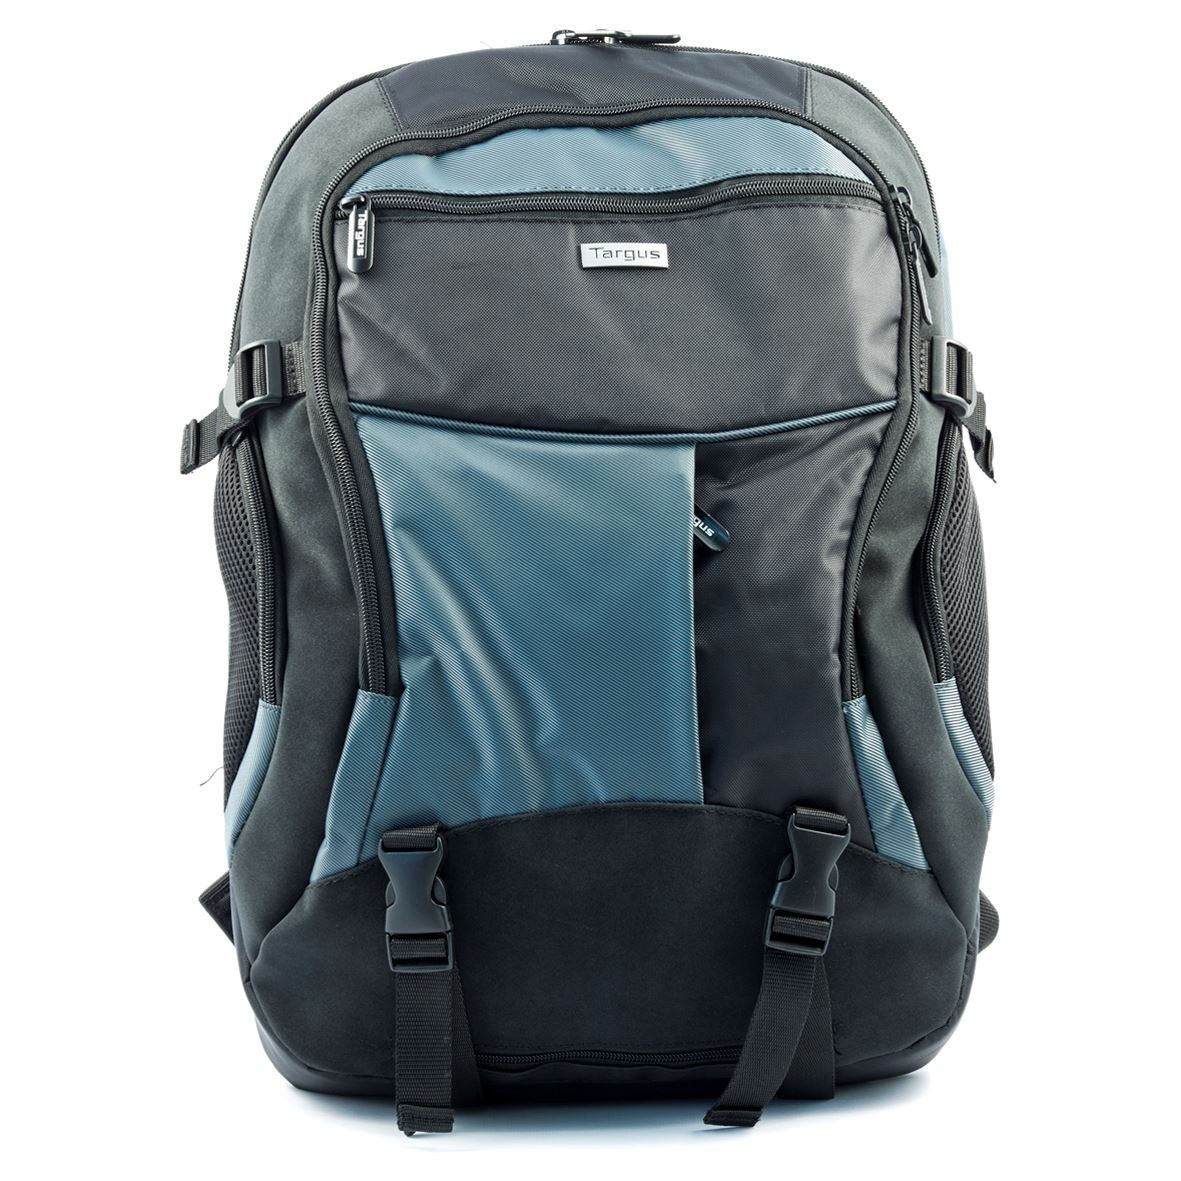 Targus Atmosphere 17-18' XL Laptop Backpack - Black/Blue